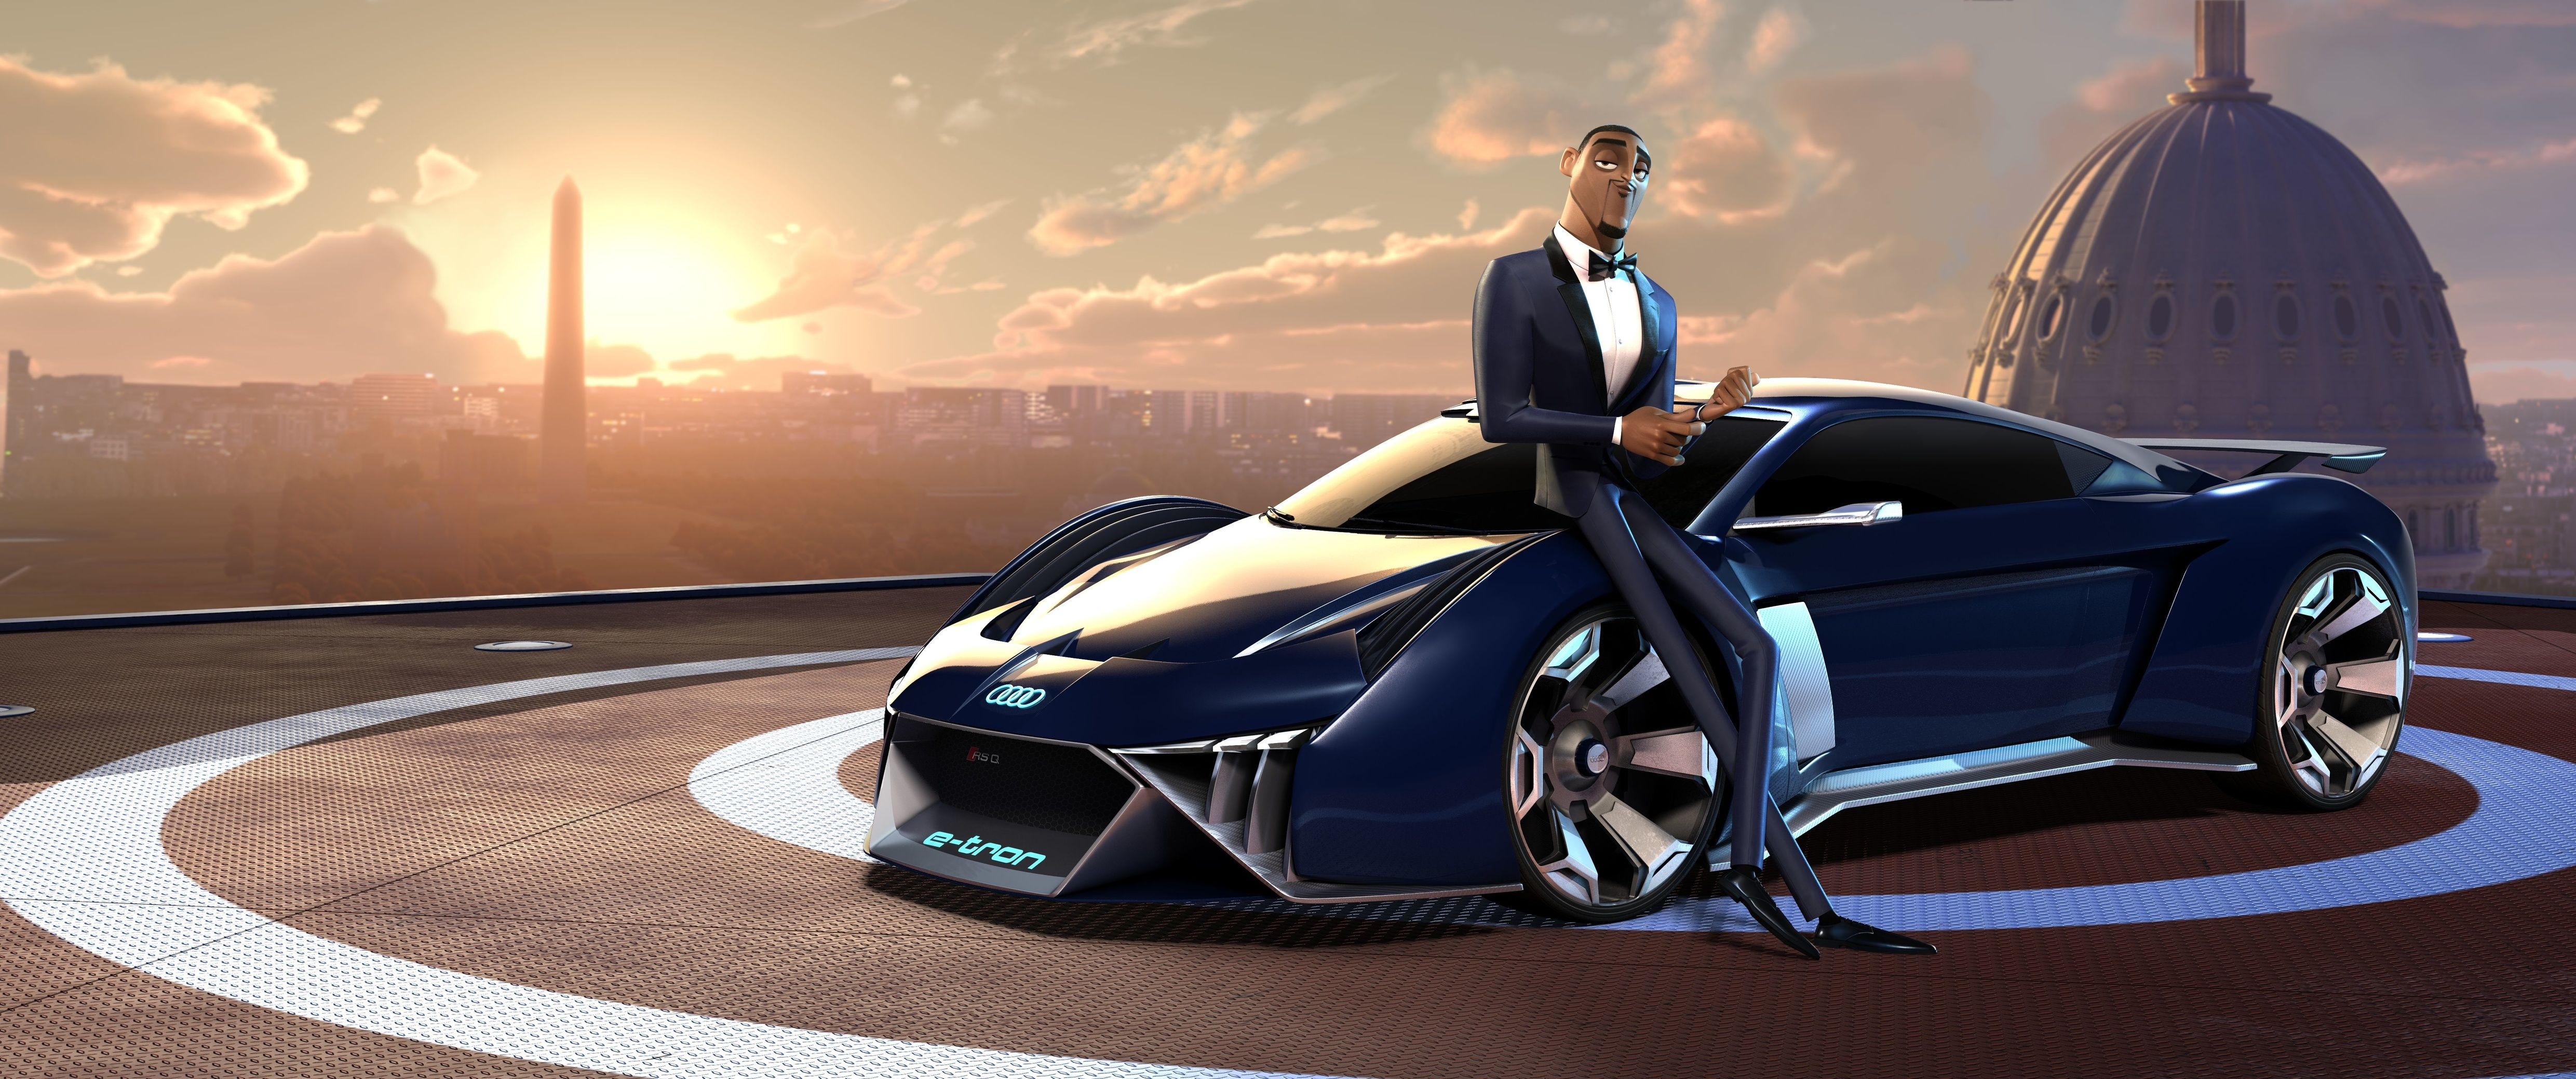 Will Smith Is About To Get Jiggy With Audi S First Animated Concept The Rsq E Tron Top Speed E Tron Blue Sky Studios Super Cars